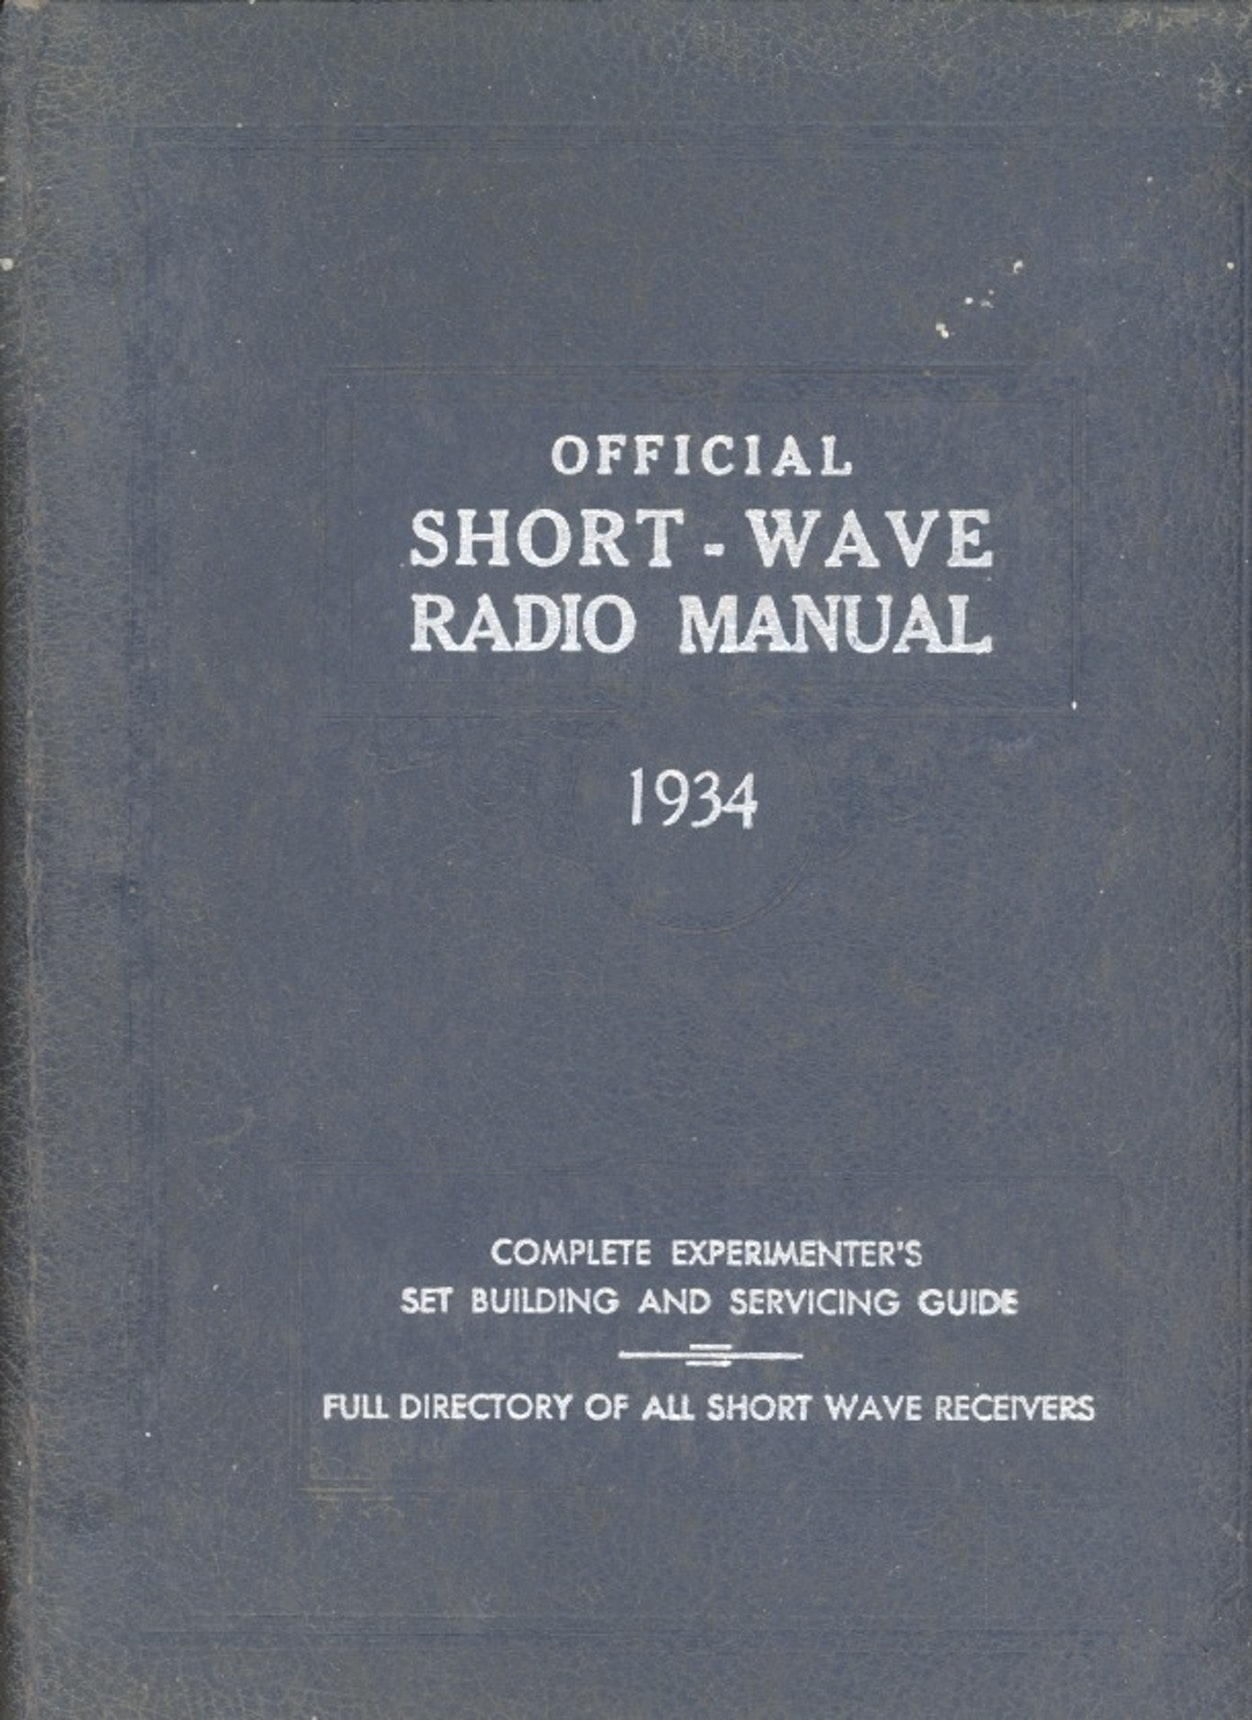 Official Short-Wave Radio Manual 1934